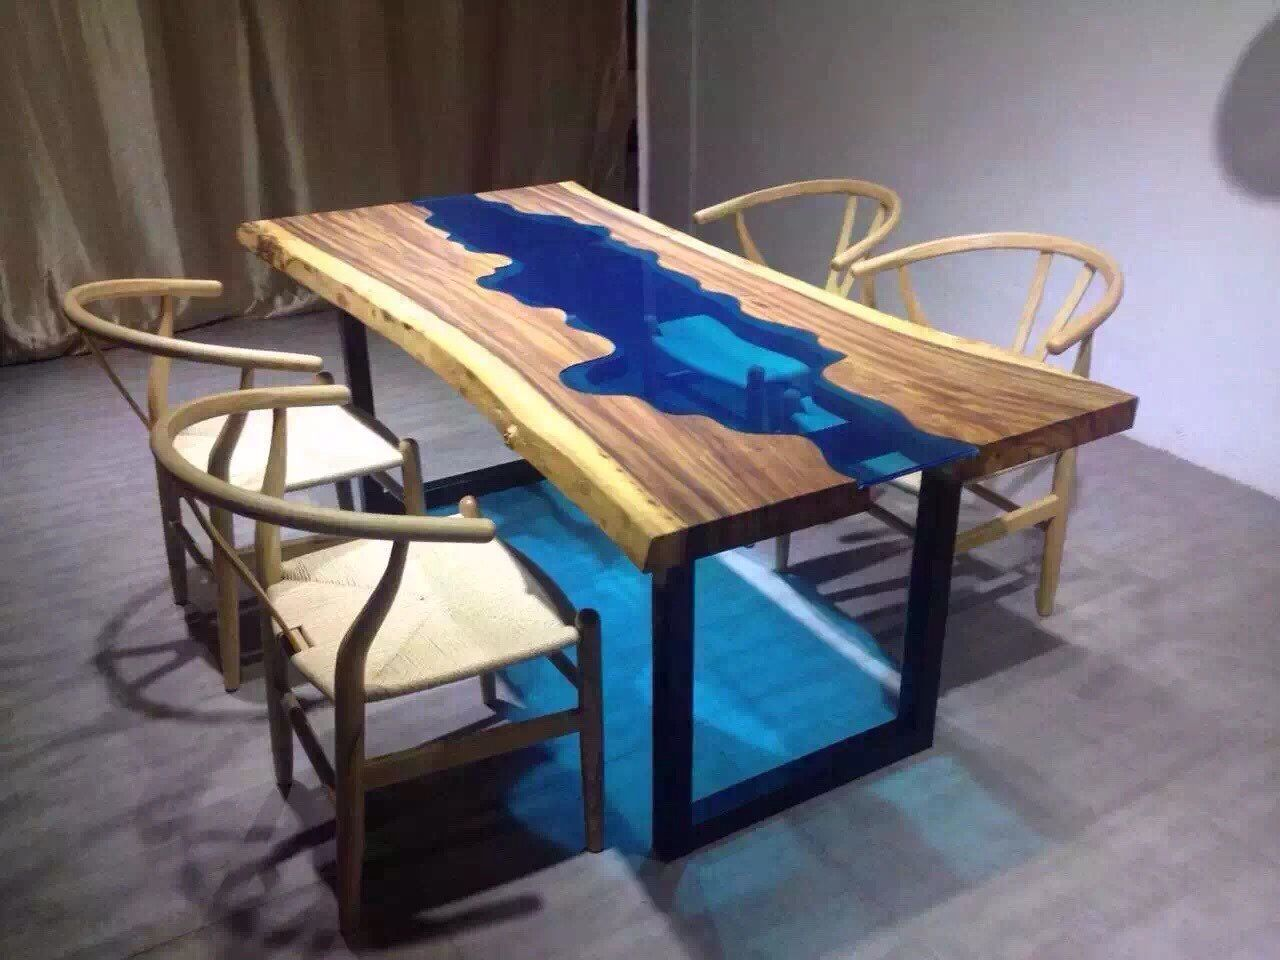 Glass conference table for sale - Acacia Live Edge River Wood And Glass Dining Table By Chitown Furniture